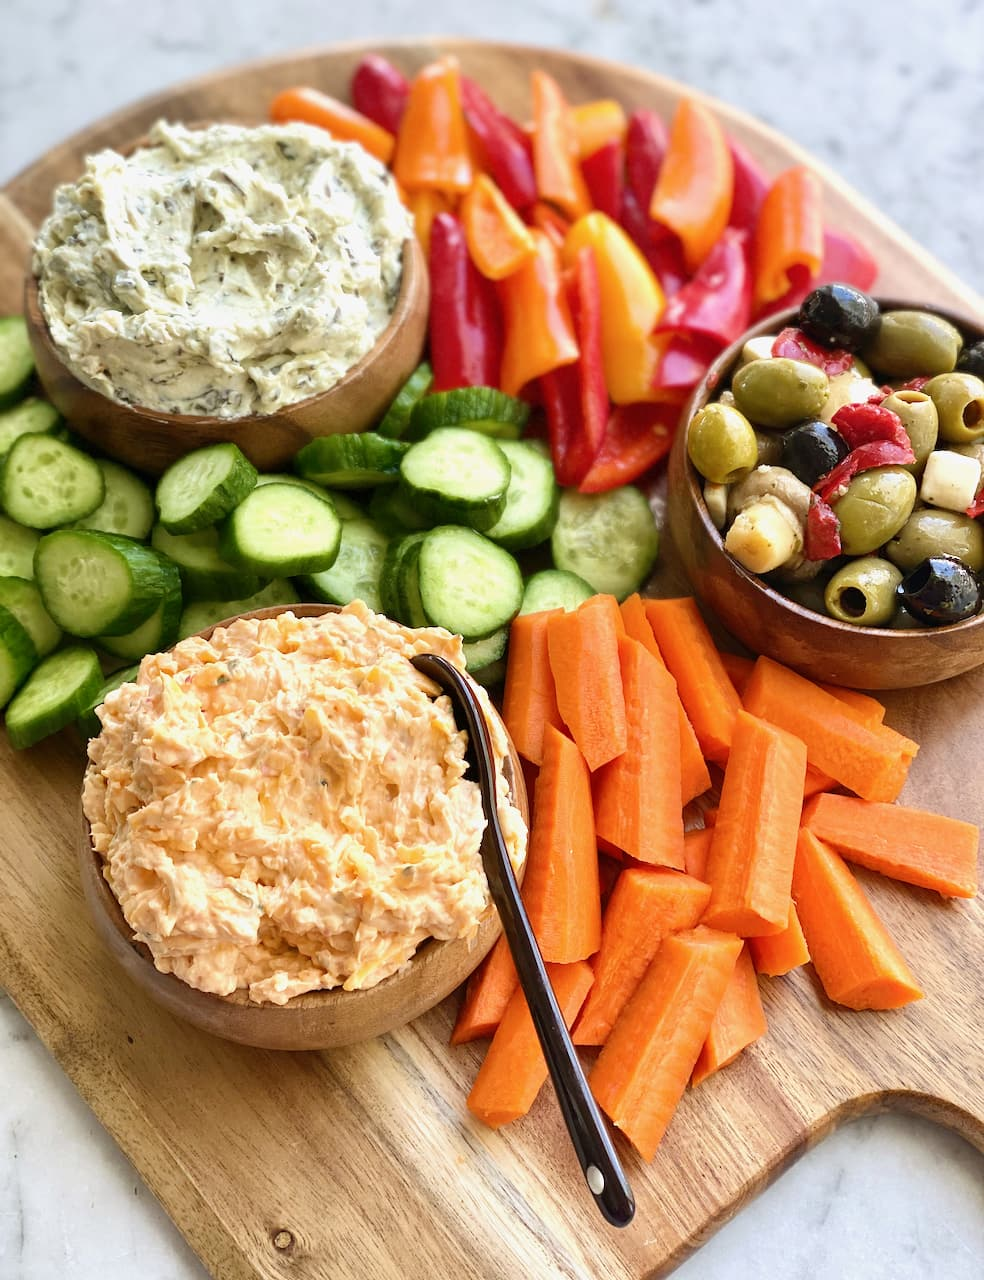 pimento cheese, spinach artichoke dip and antipasti surrounded by colorful veggies